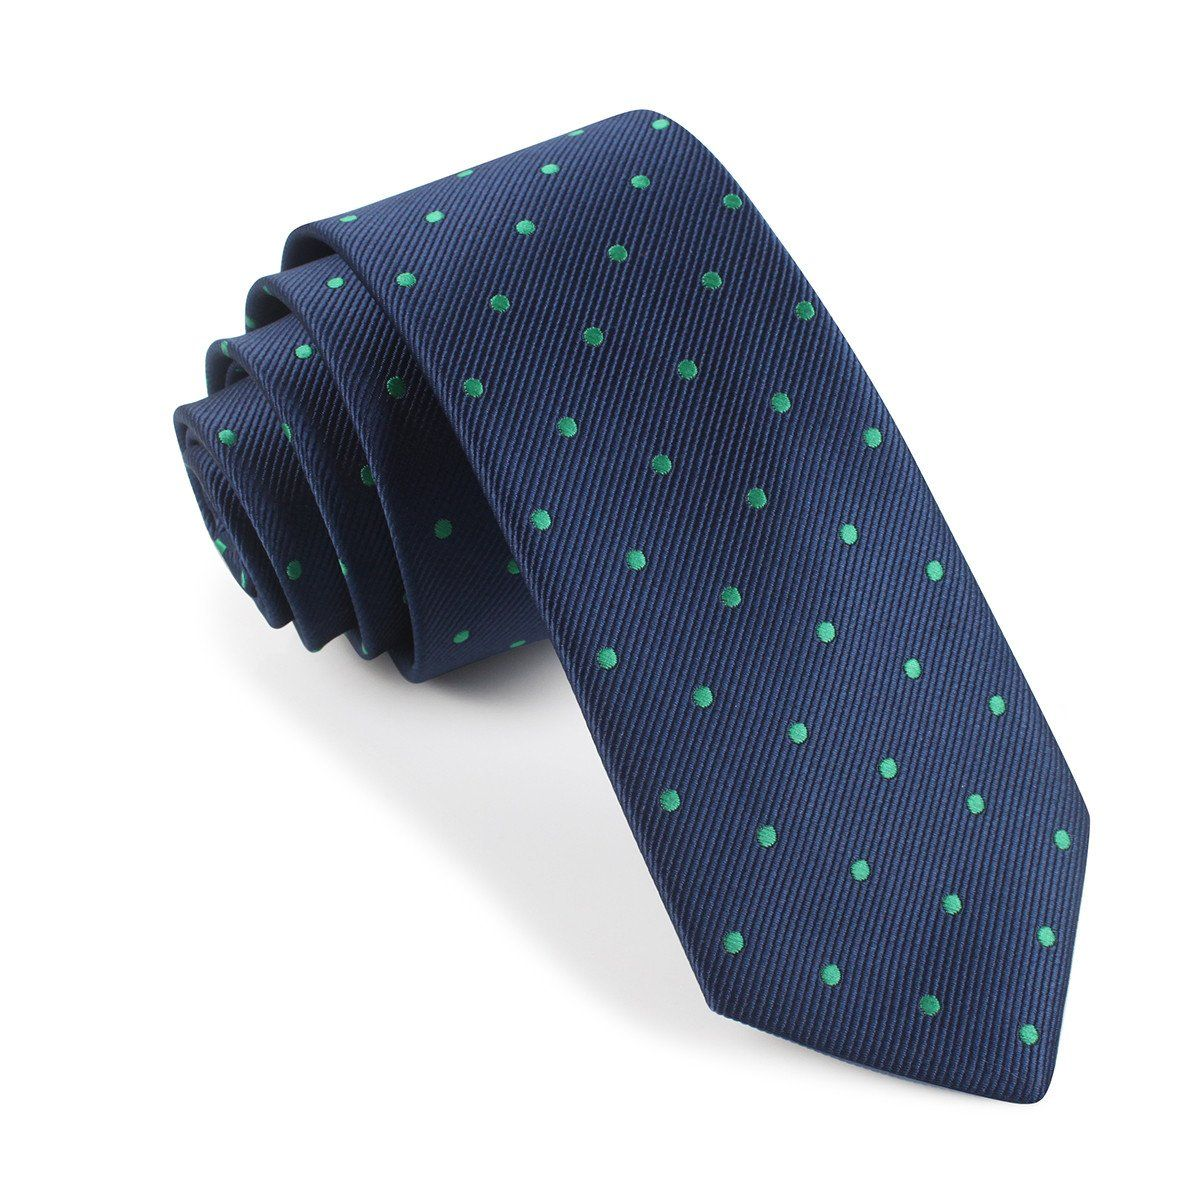 Navy Blue with Green Polka Dots Skinny Tie Skinny ties